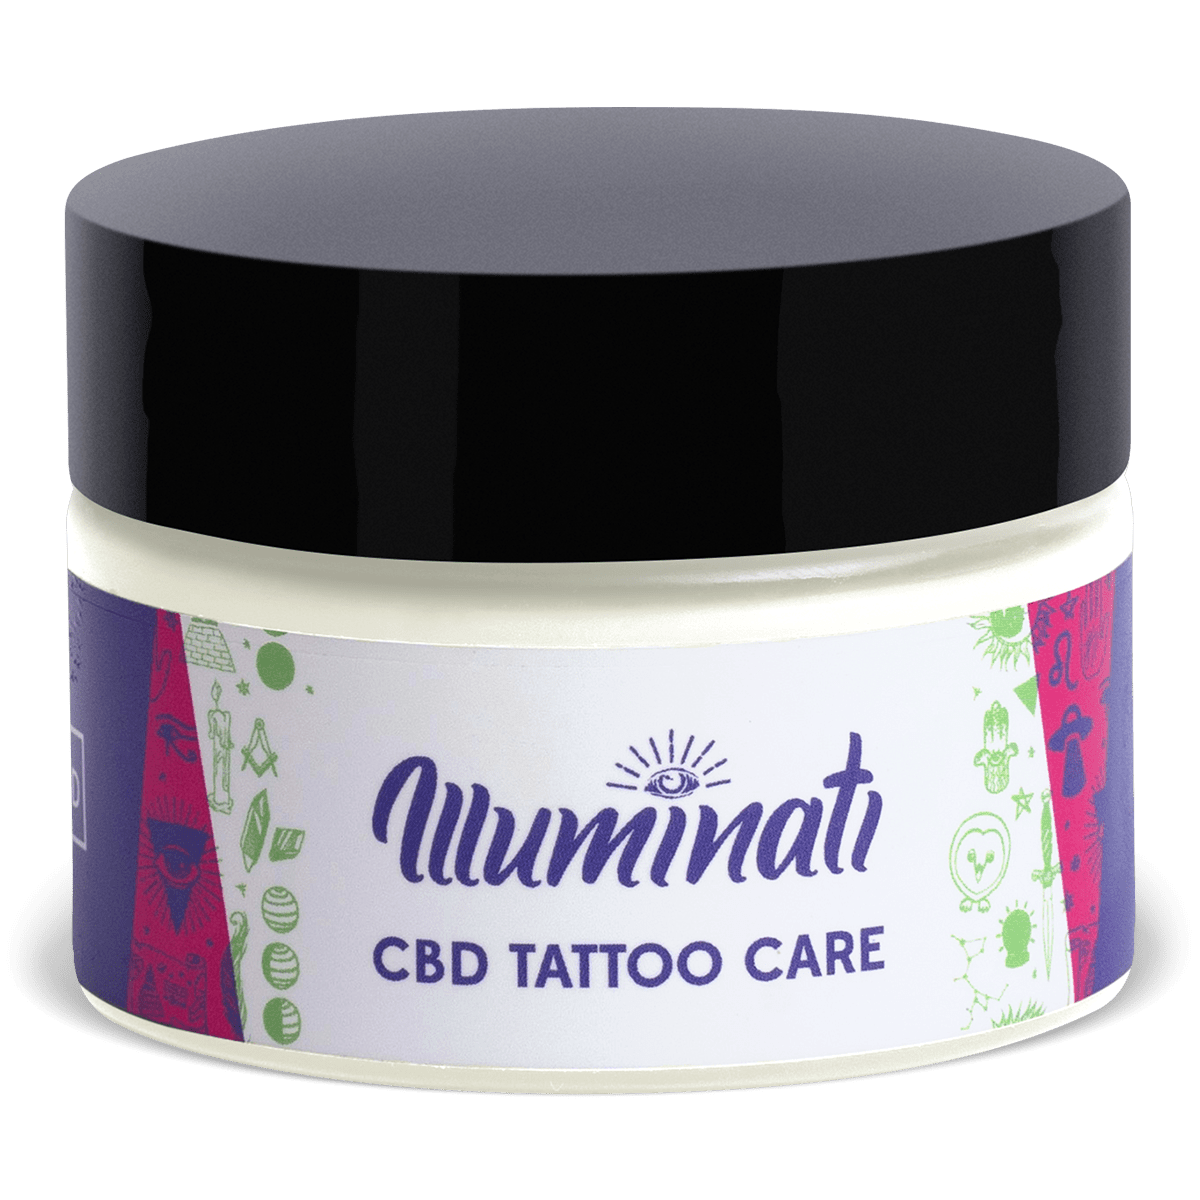 Illuminati Tattoo Care Cream 800mg